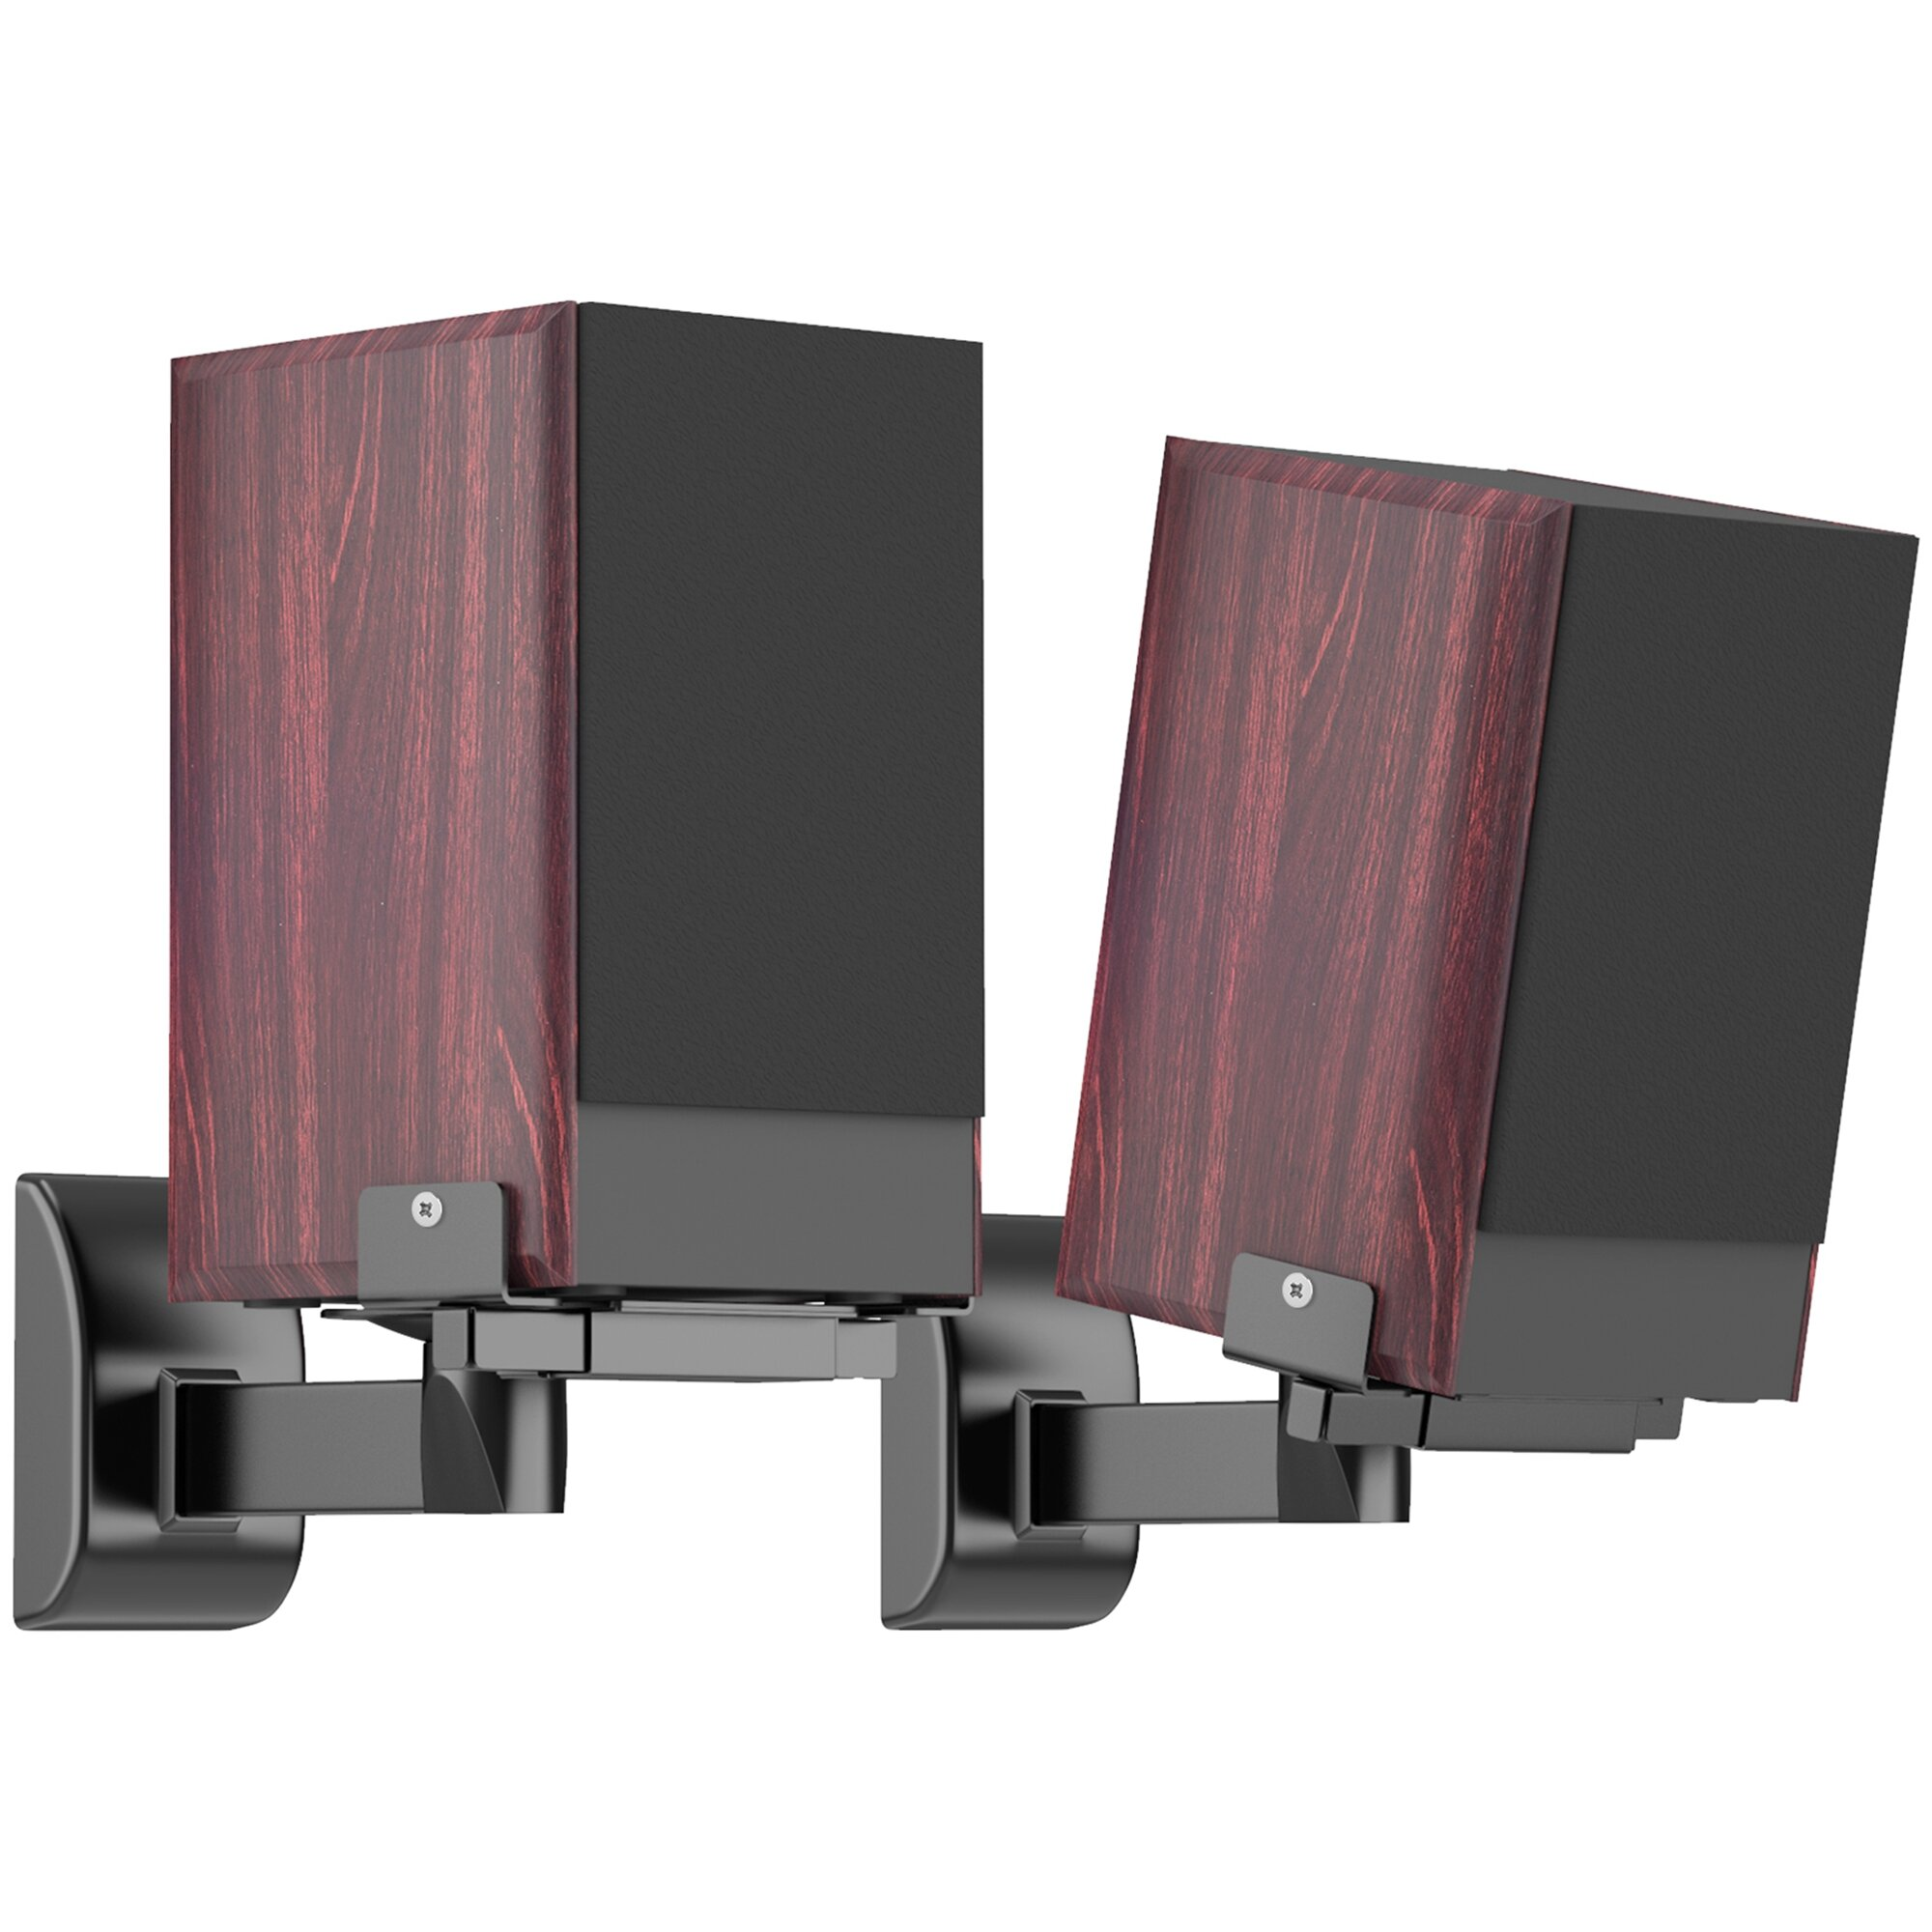 Side Clamping Bookshelf 10cm x 10cm Fixed Height Speaker Stand